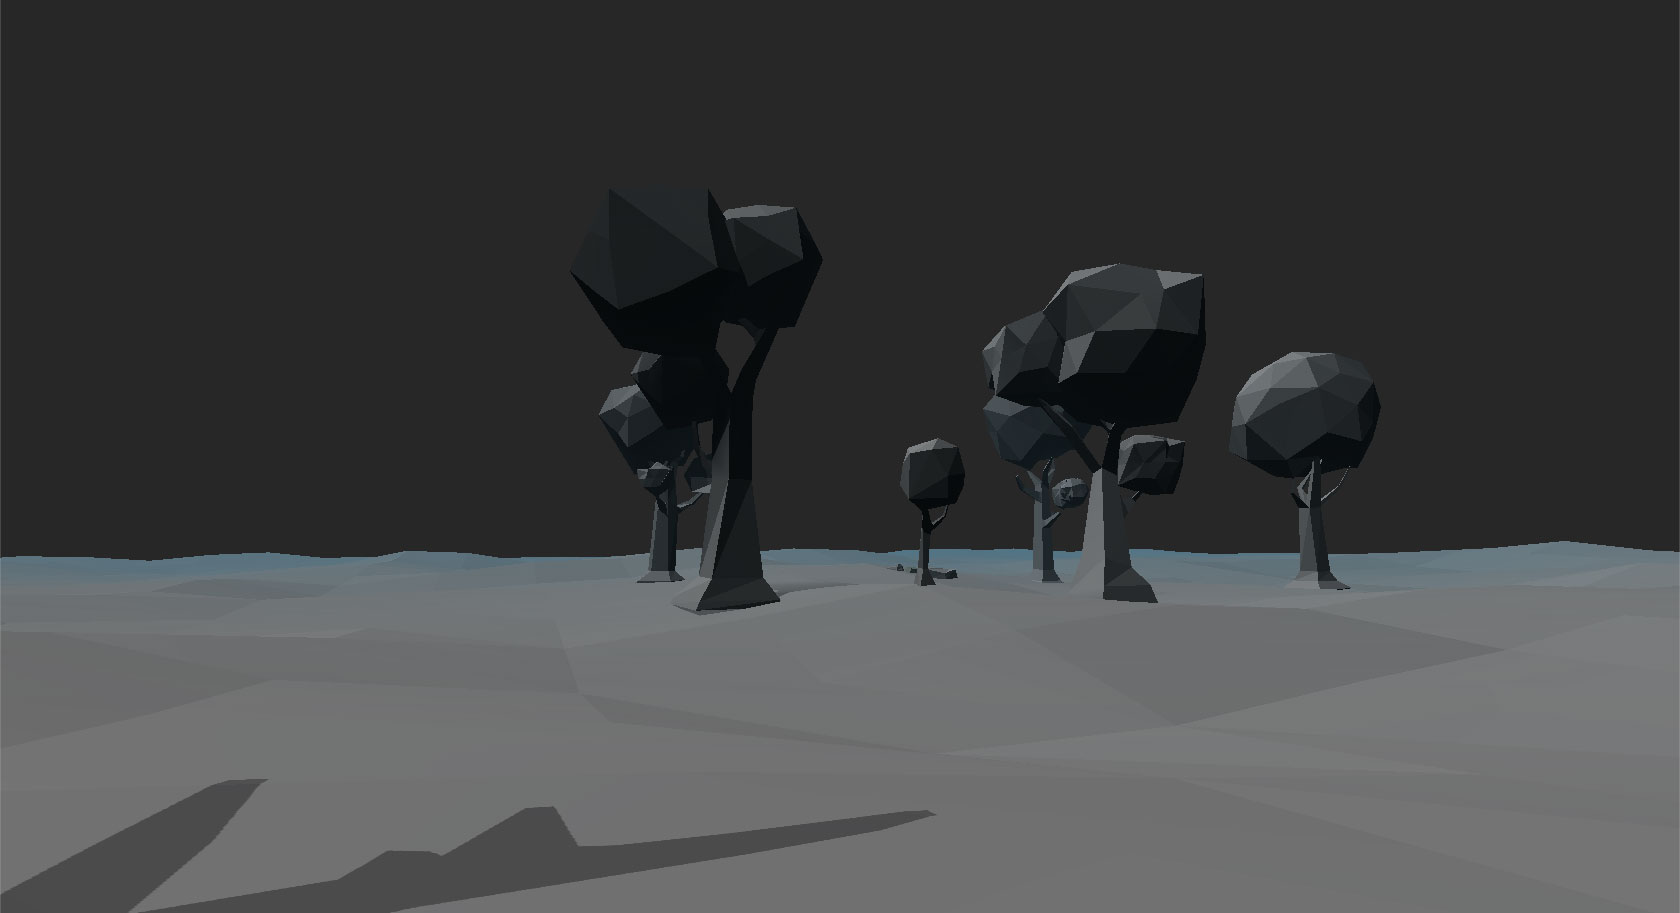 Unity light tests | The Hedge Knight